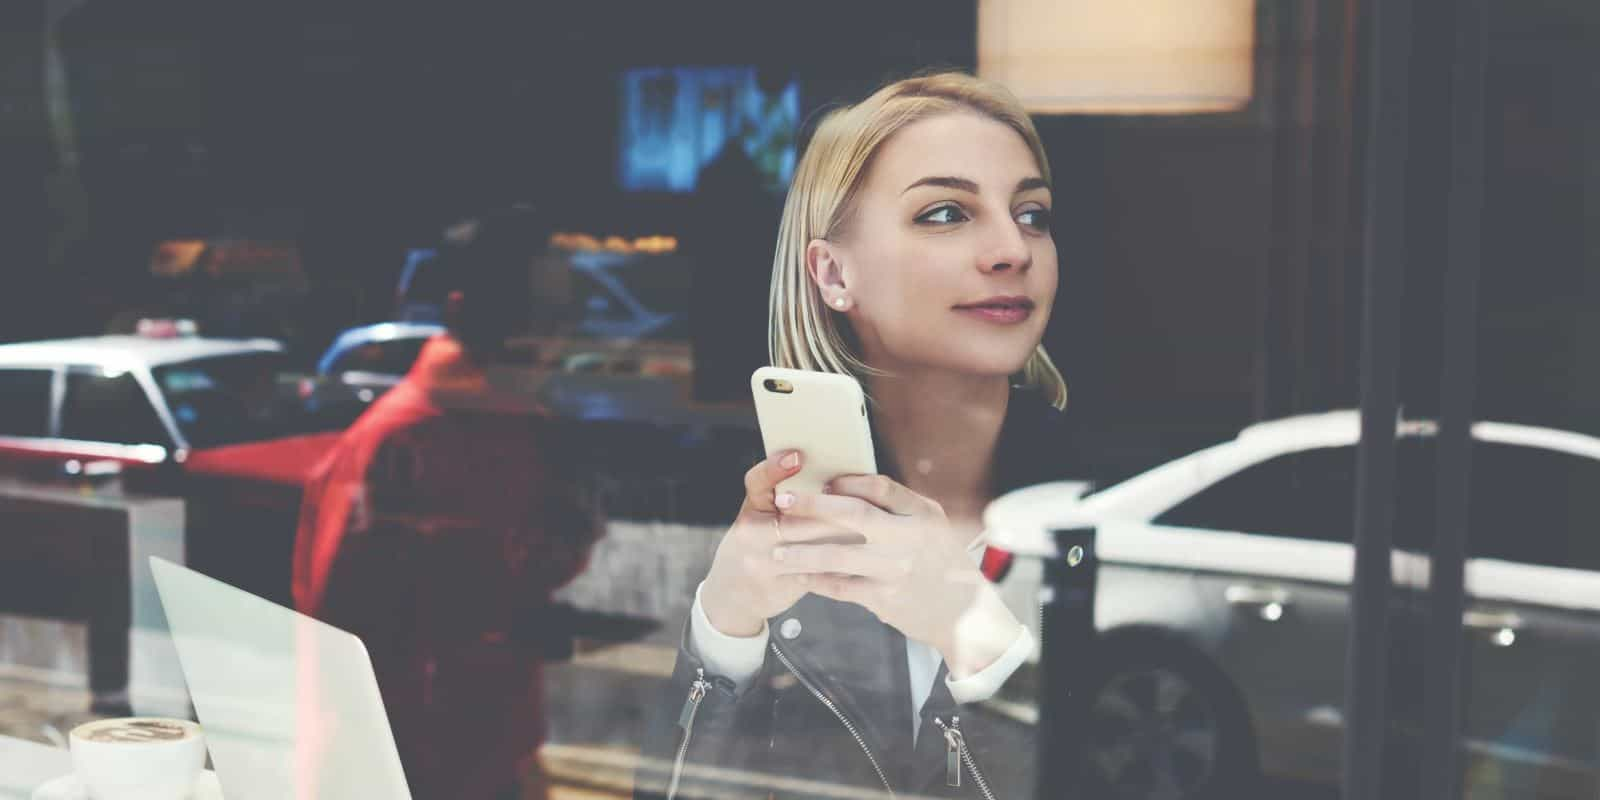 Young woman making an electronic payment on her smartphone